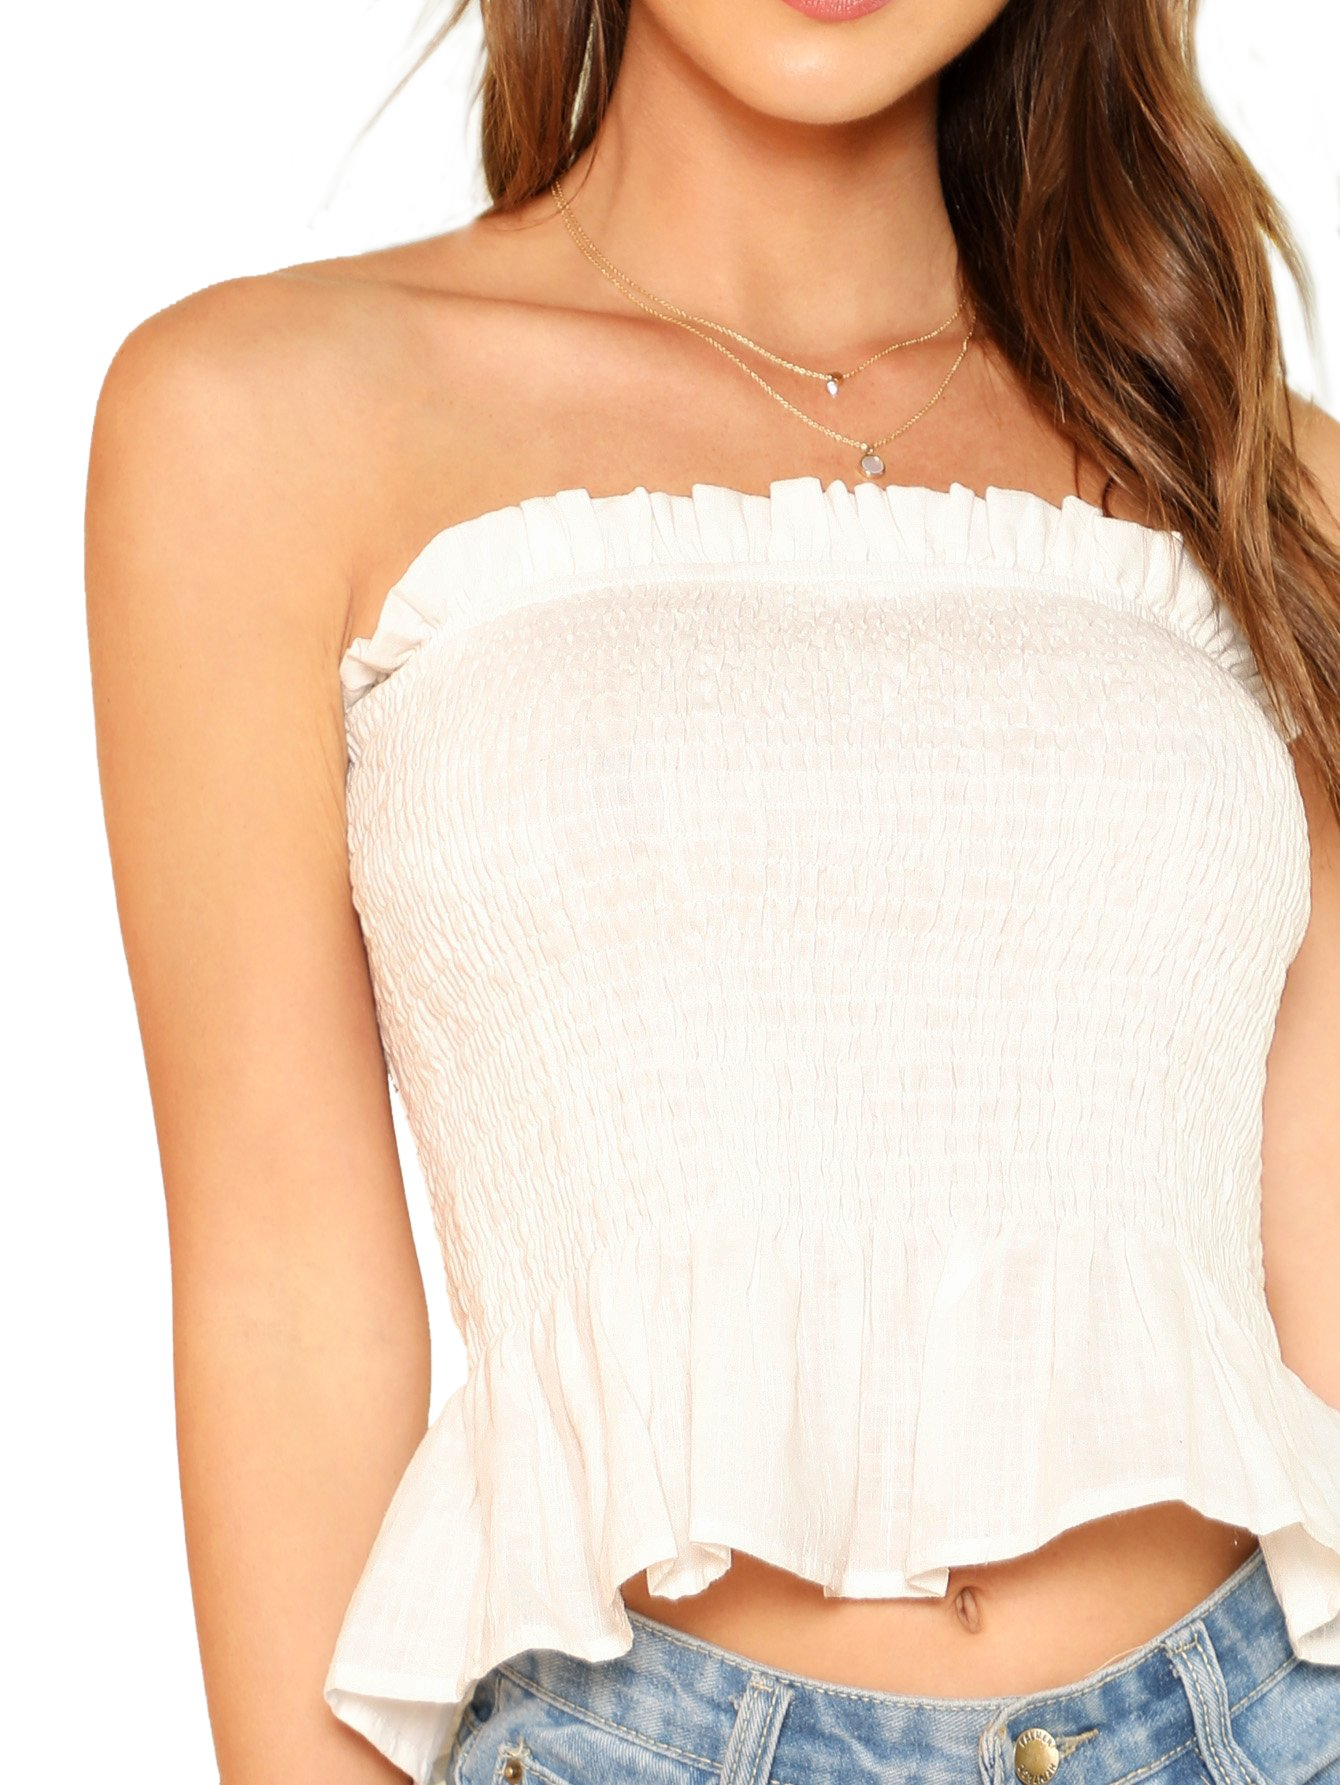 MakeMeChic Women's Sexy Strapless Bandeau Tube Crop Tops 1-White S